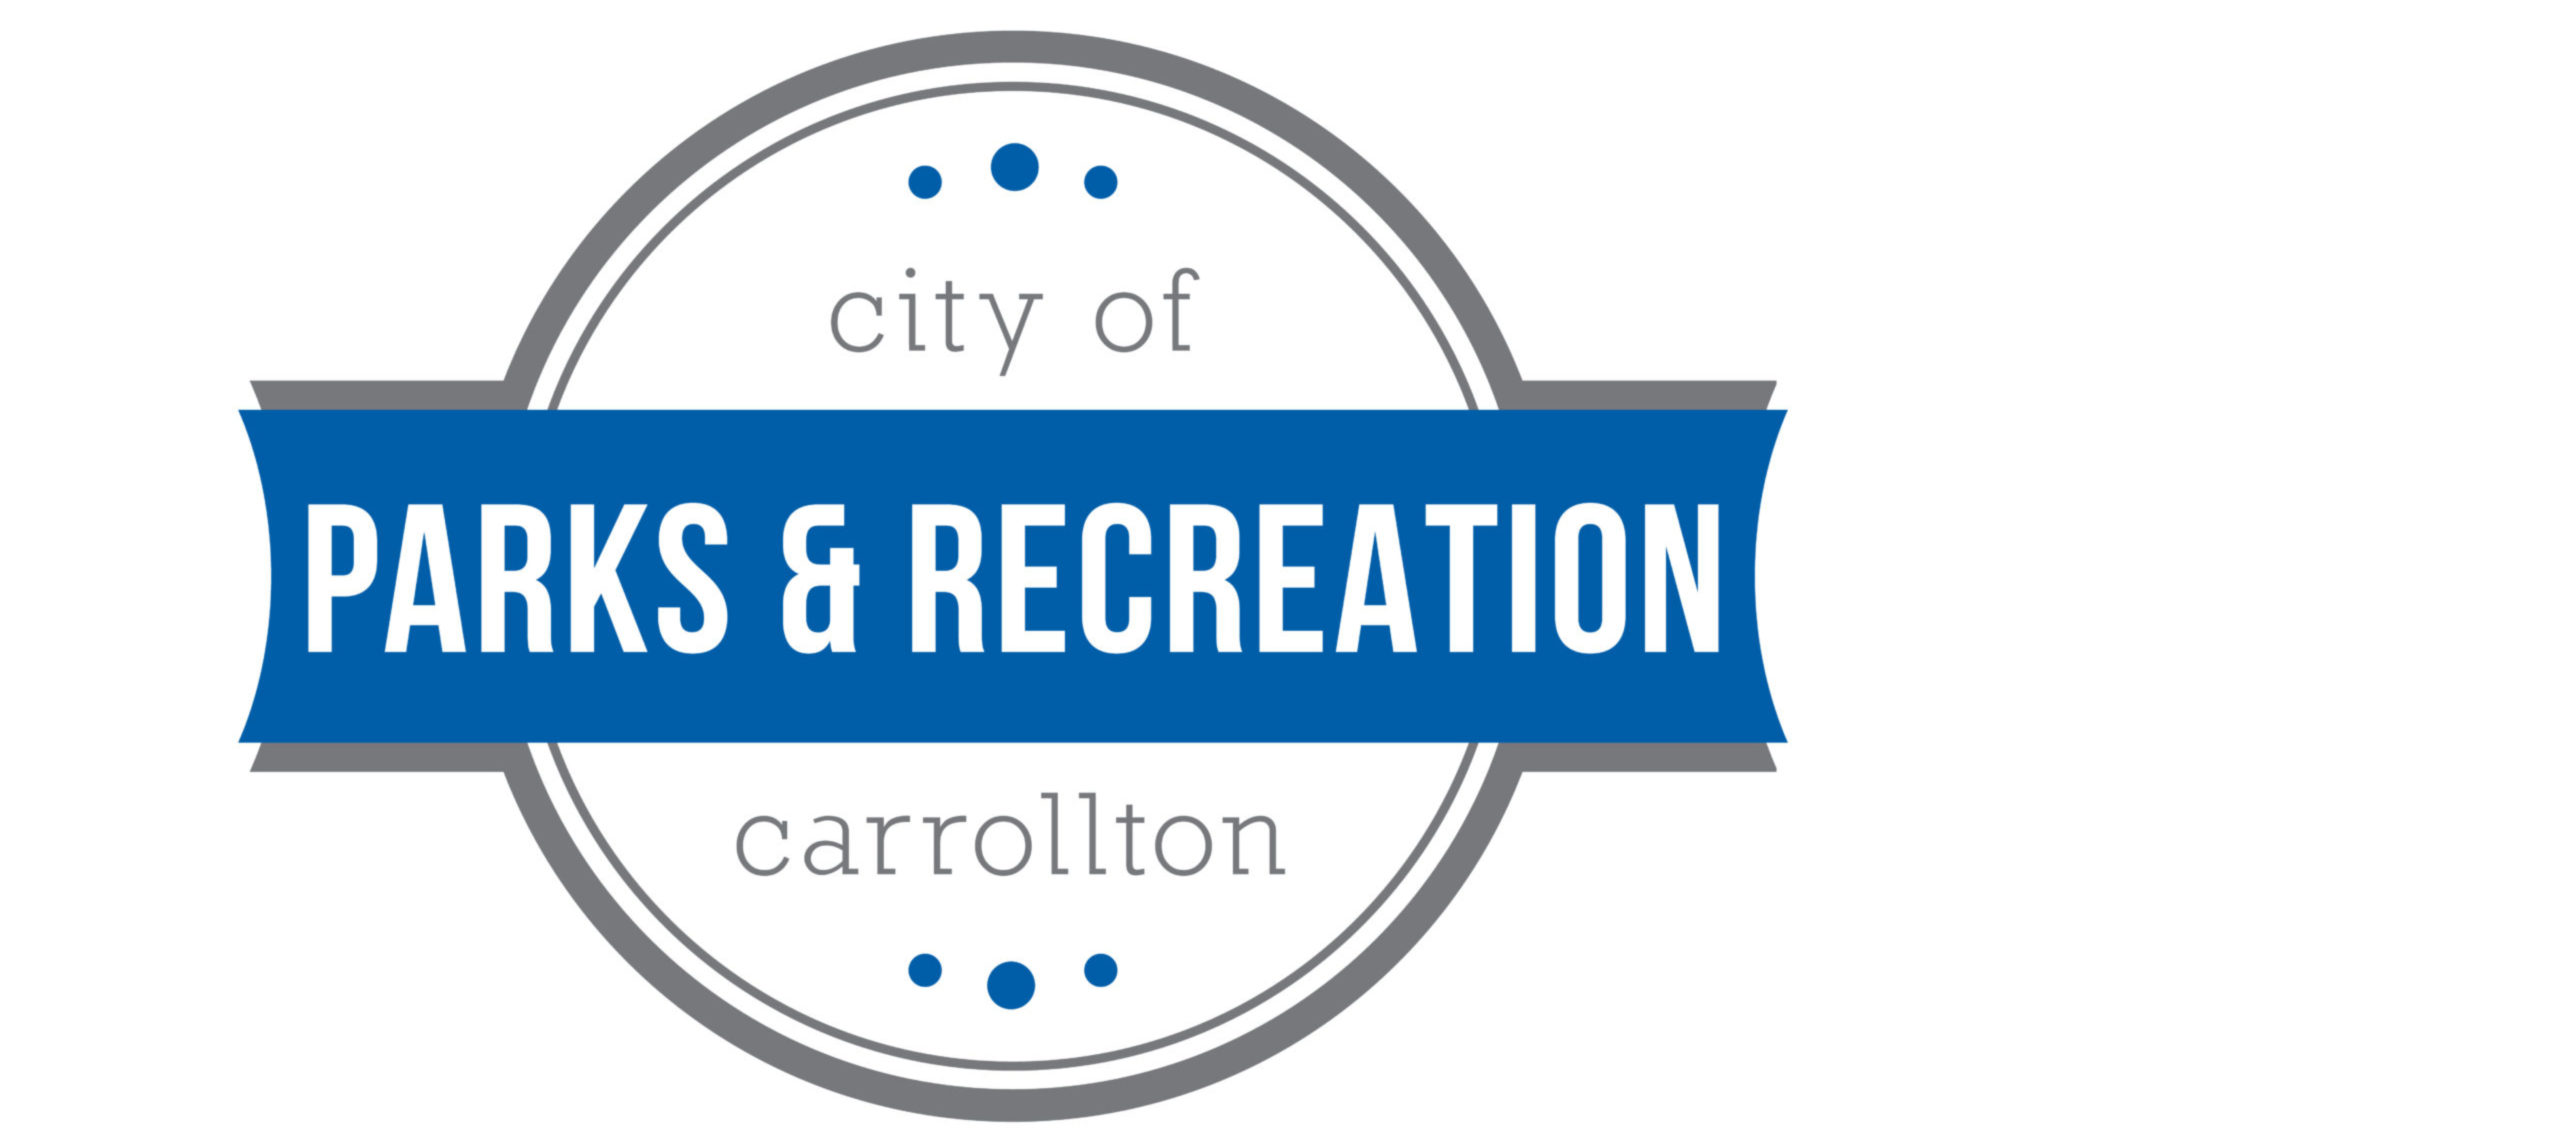 Carrollton Parks and Recreation